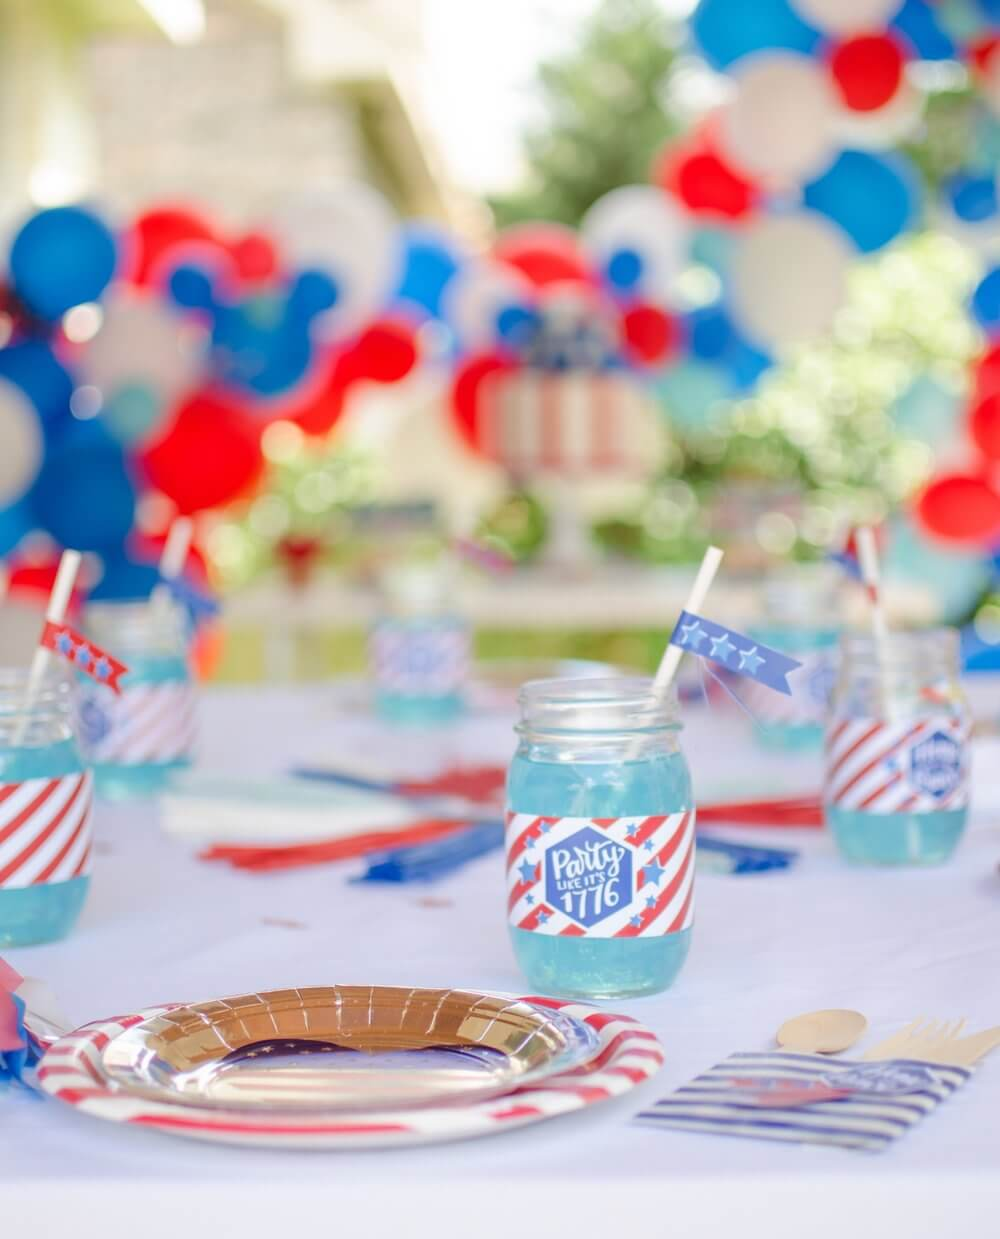 4th of July, Independence Day, Patriotic party inspiration table.